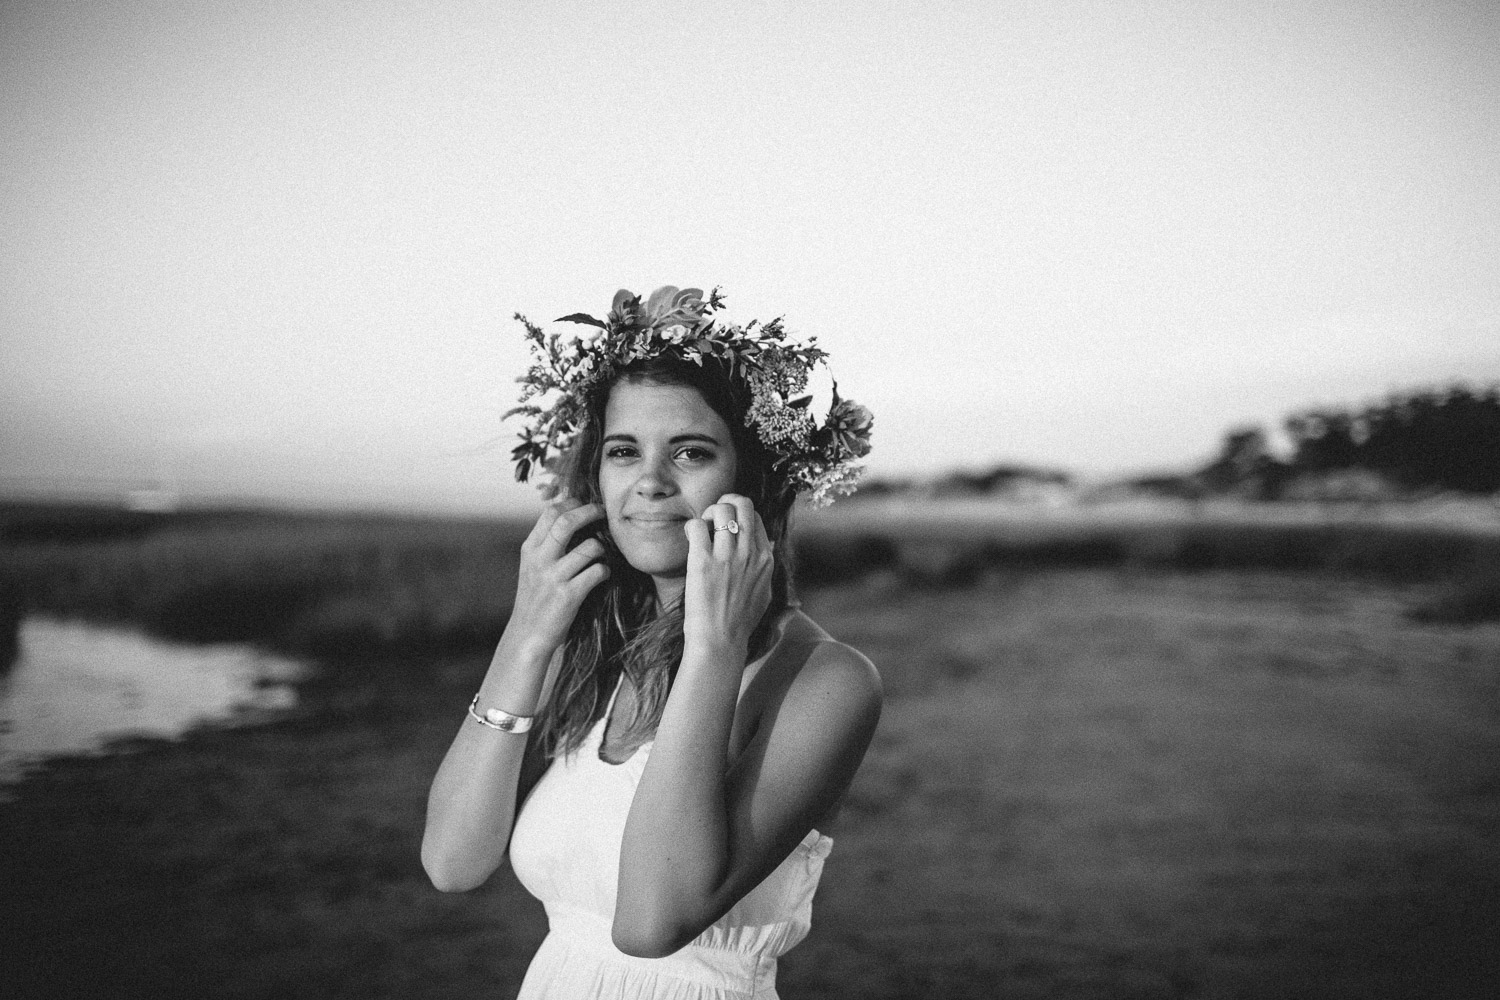 cape-cod-bay-flower-crown-portrait10.jpg